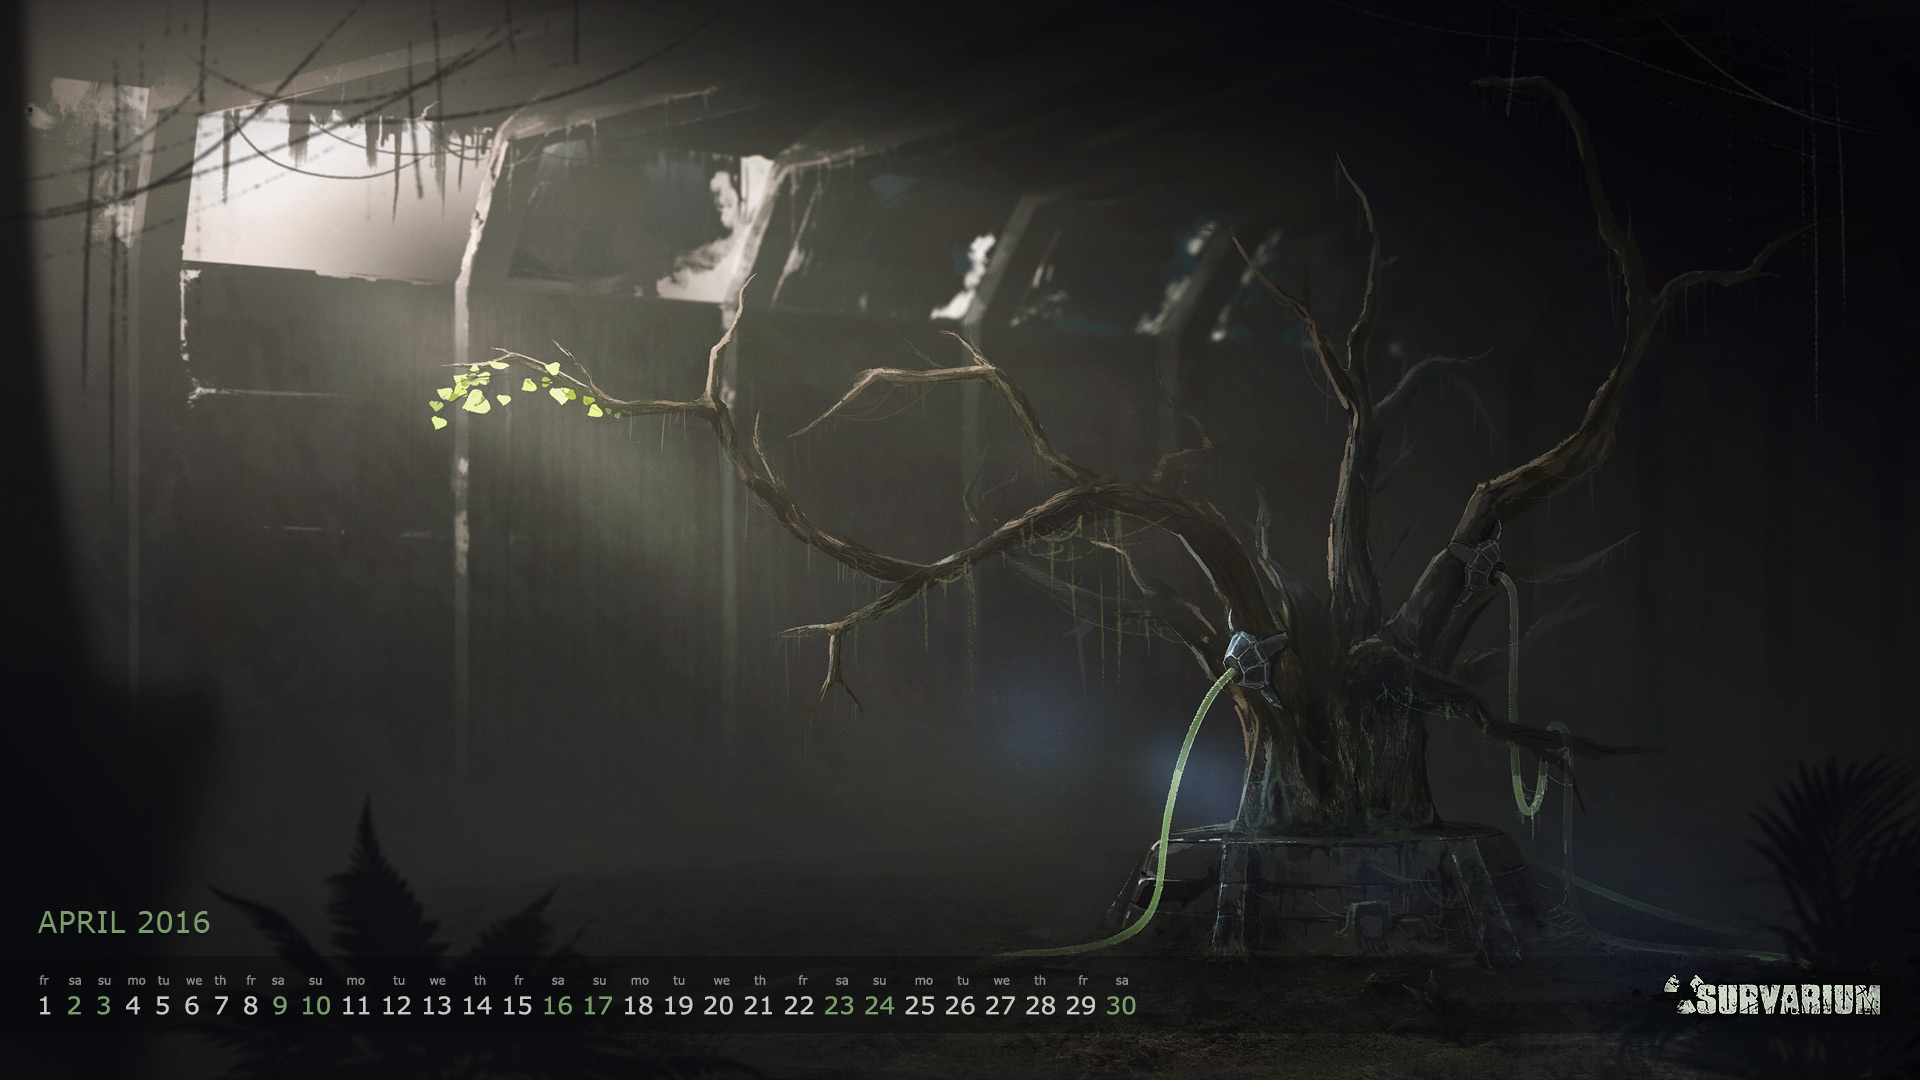 Survarium Wallpaper Calendar for April 2016 19201080 1920x1080